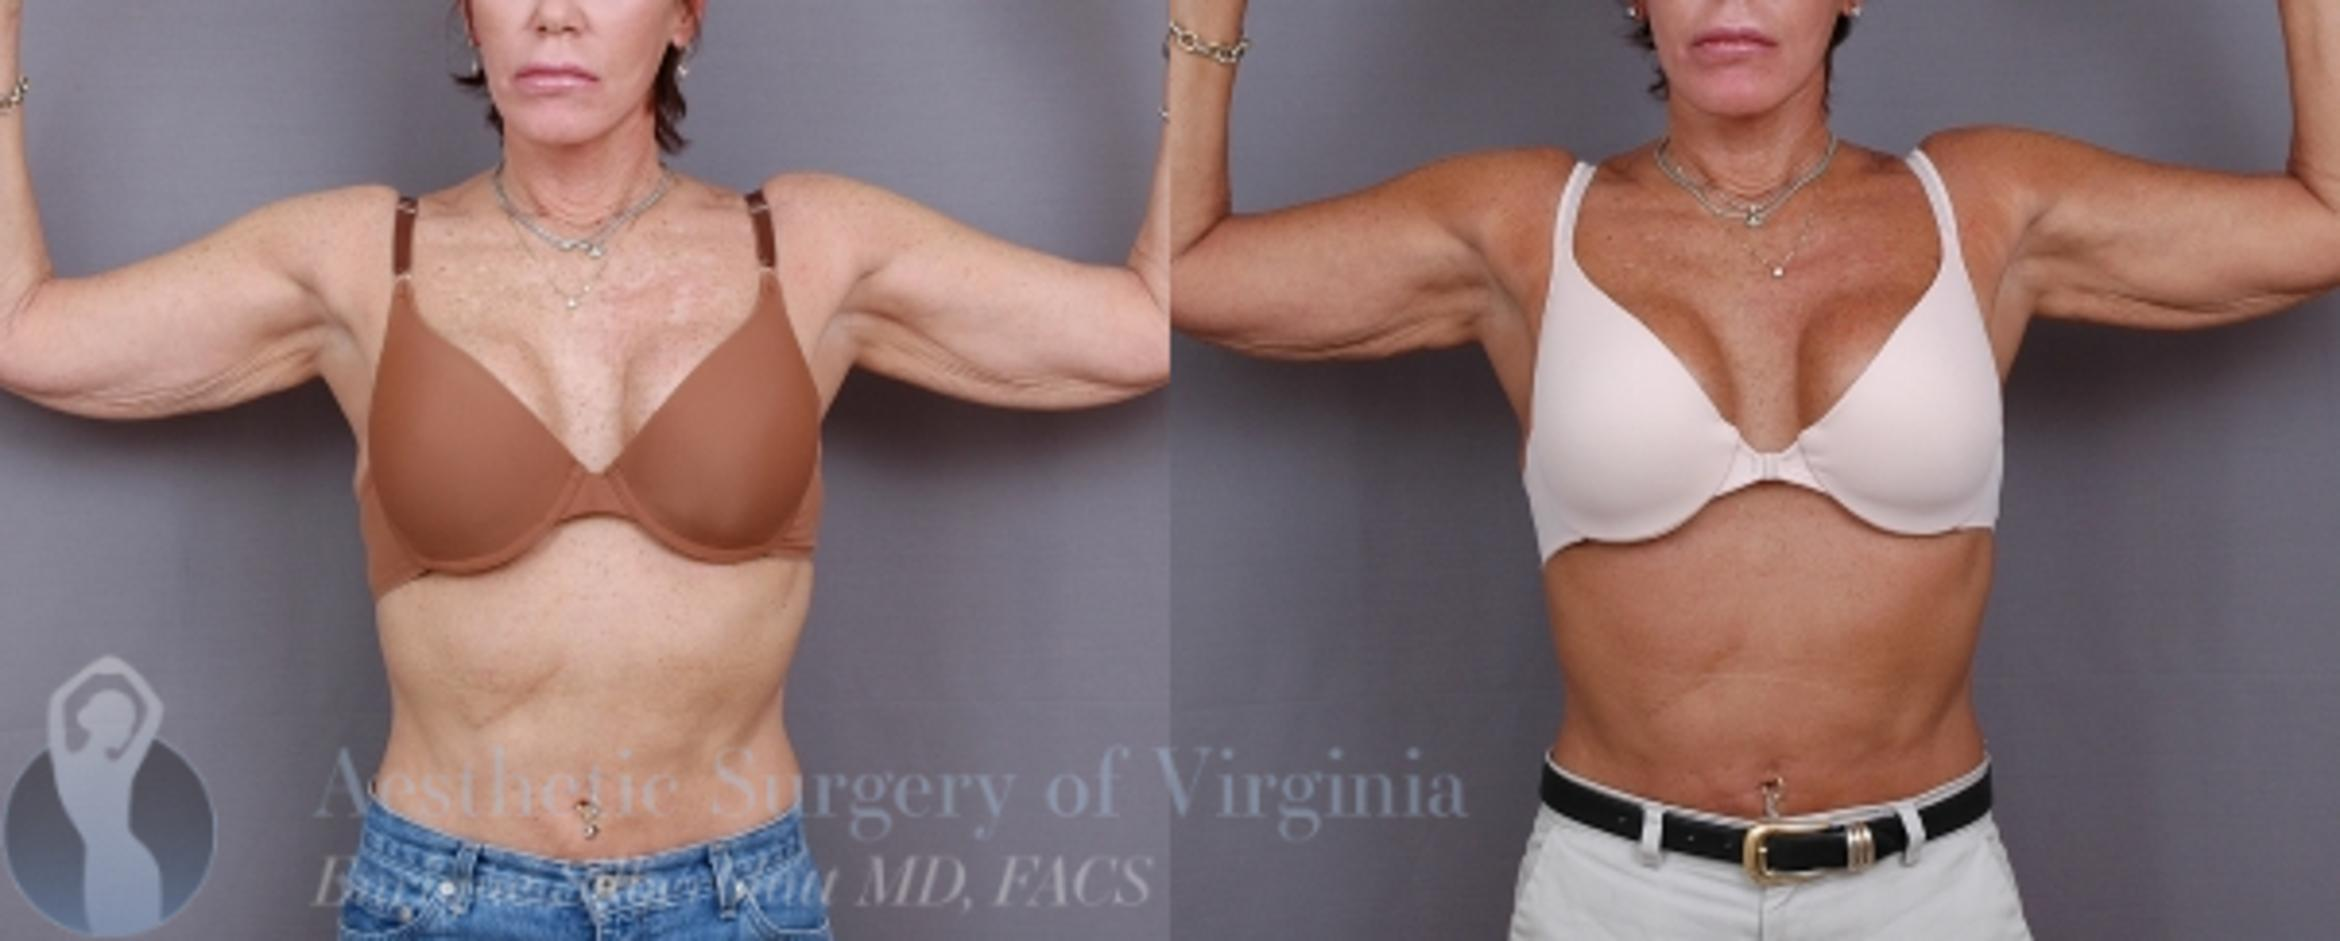 Arm Lift Surgery Case 32 Before & After View #4 | Roanoke, VA | Aesthetic Surgery of Virginia: Enrique Silberblatt, MD